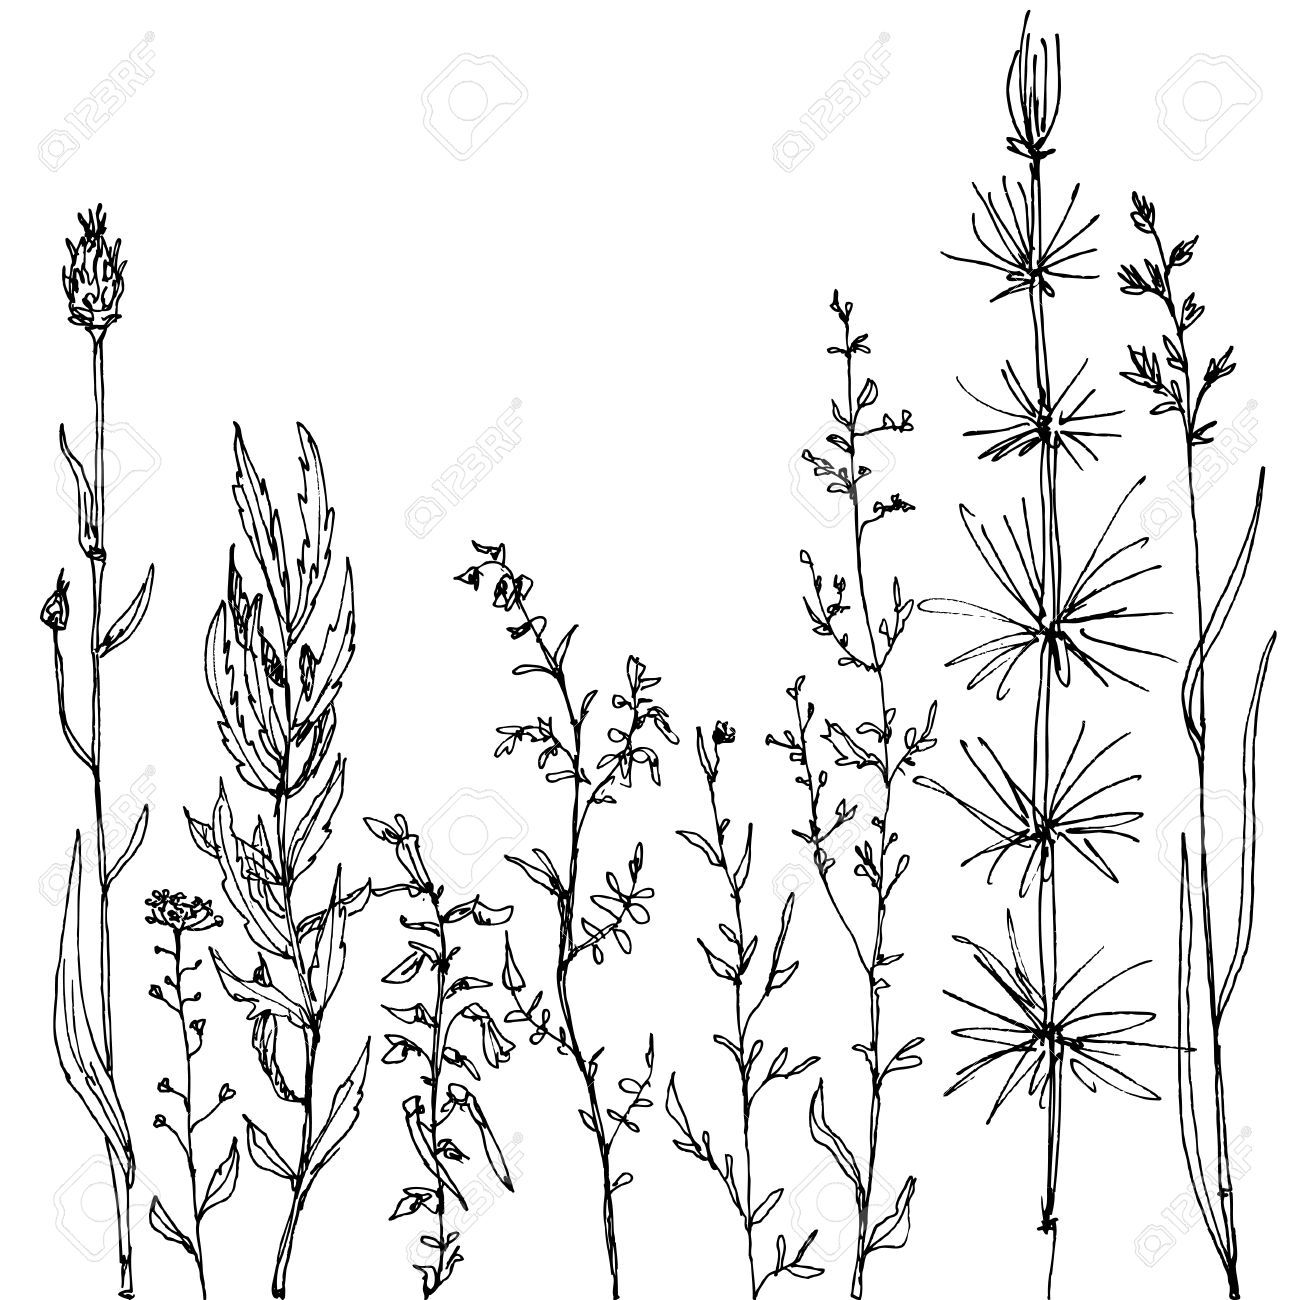 Flower Meadow Cliparts Stock Vector And Royalty Free Flower